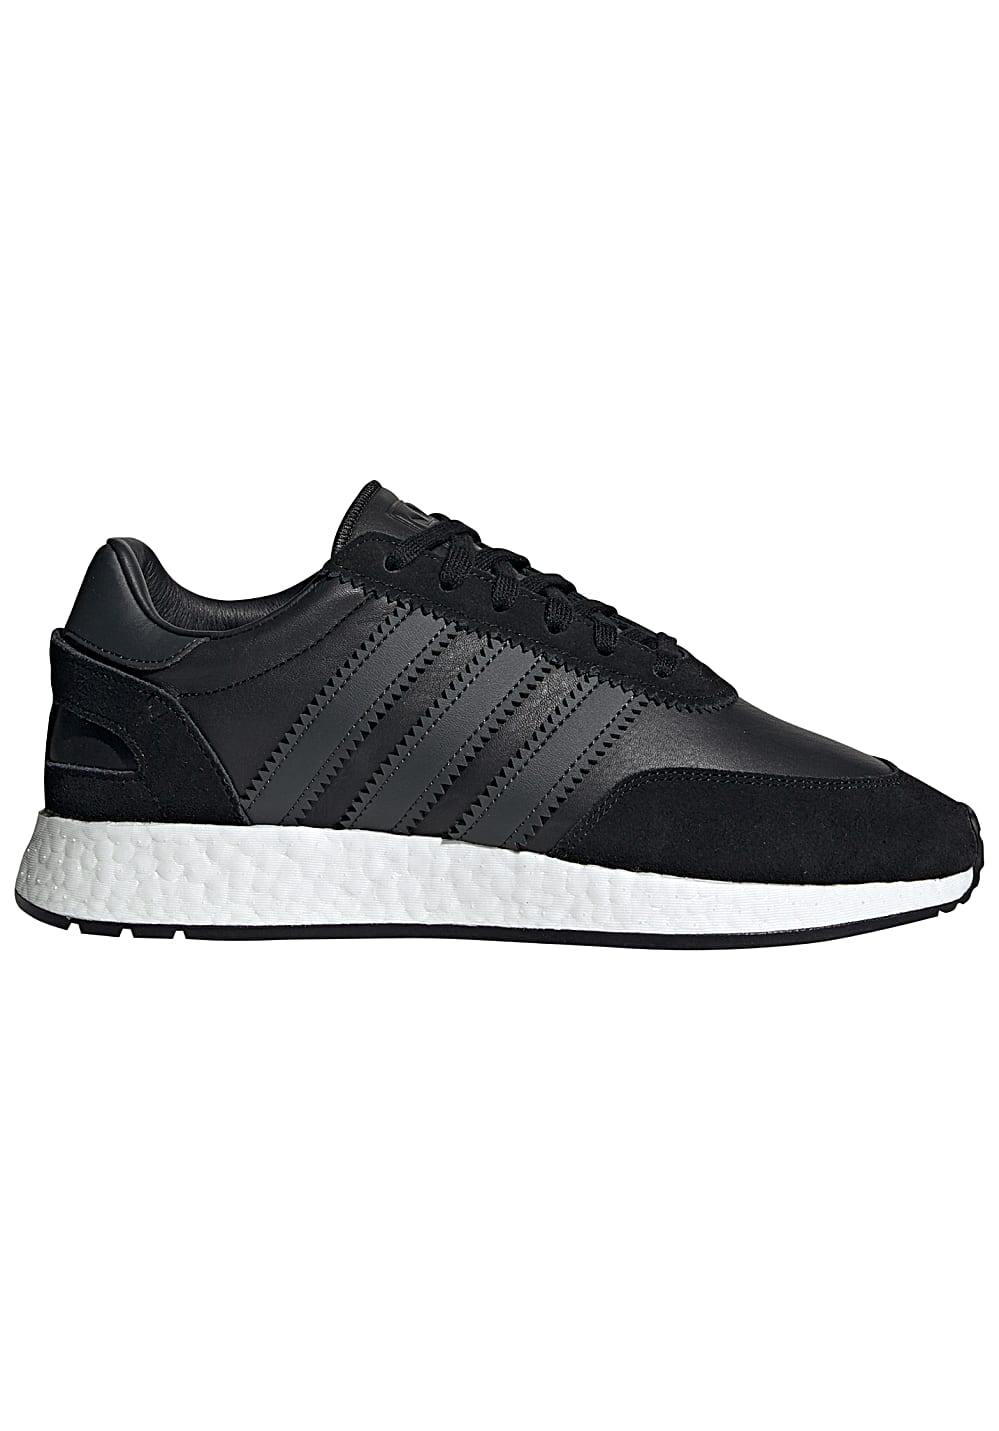 Sneakers I 5923 Black Originals Adidas For Men BCxdoe